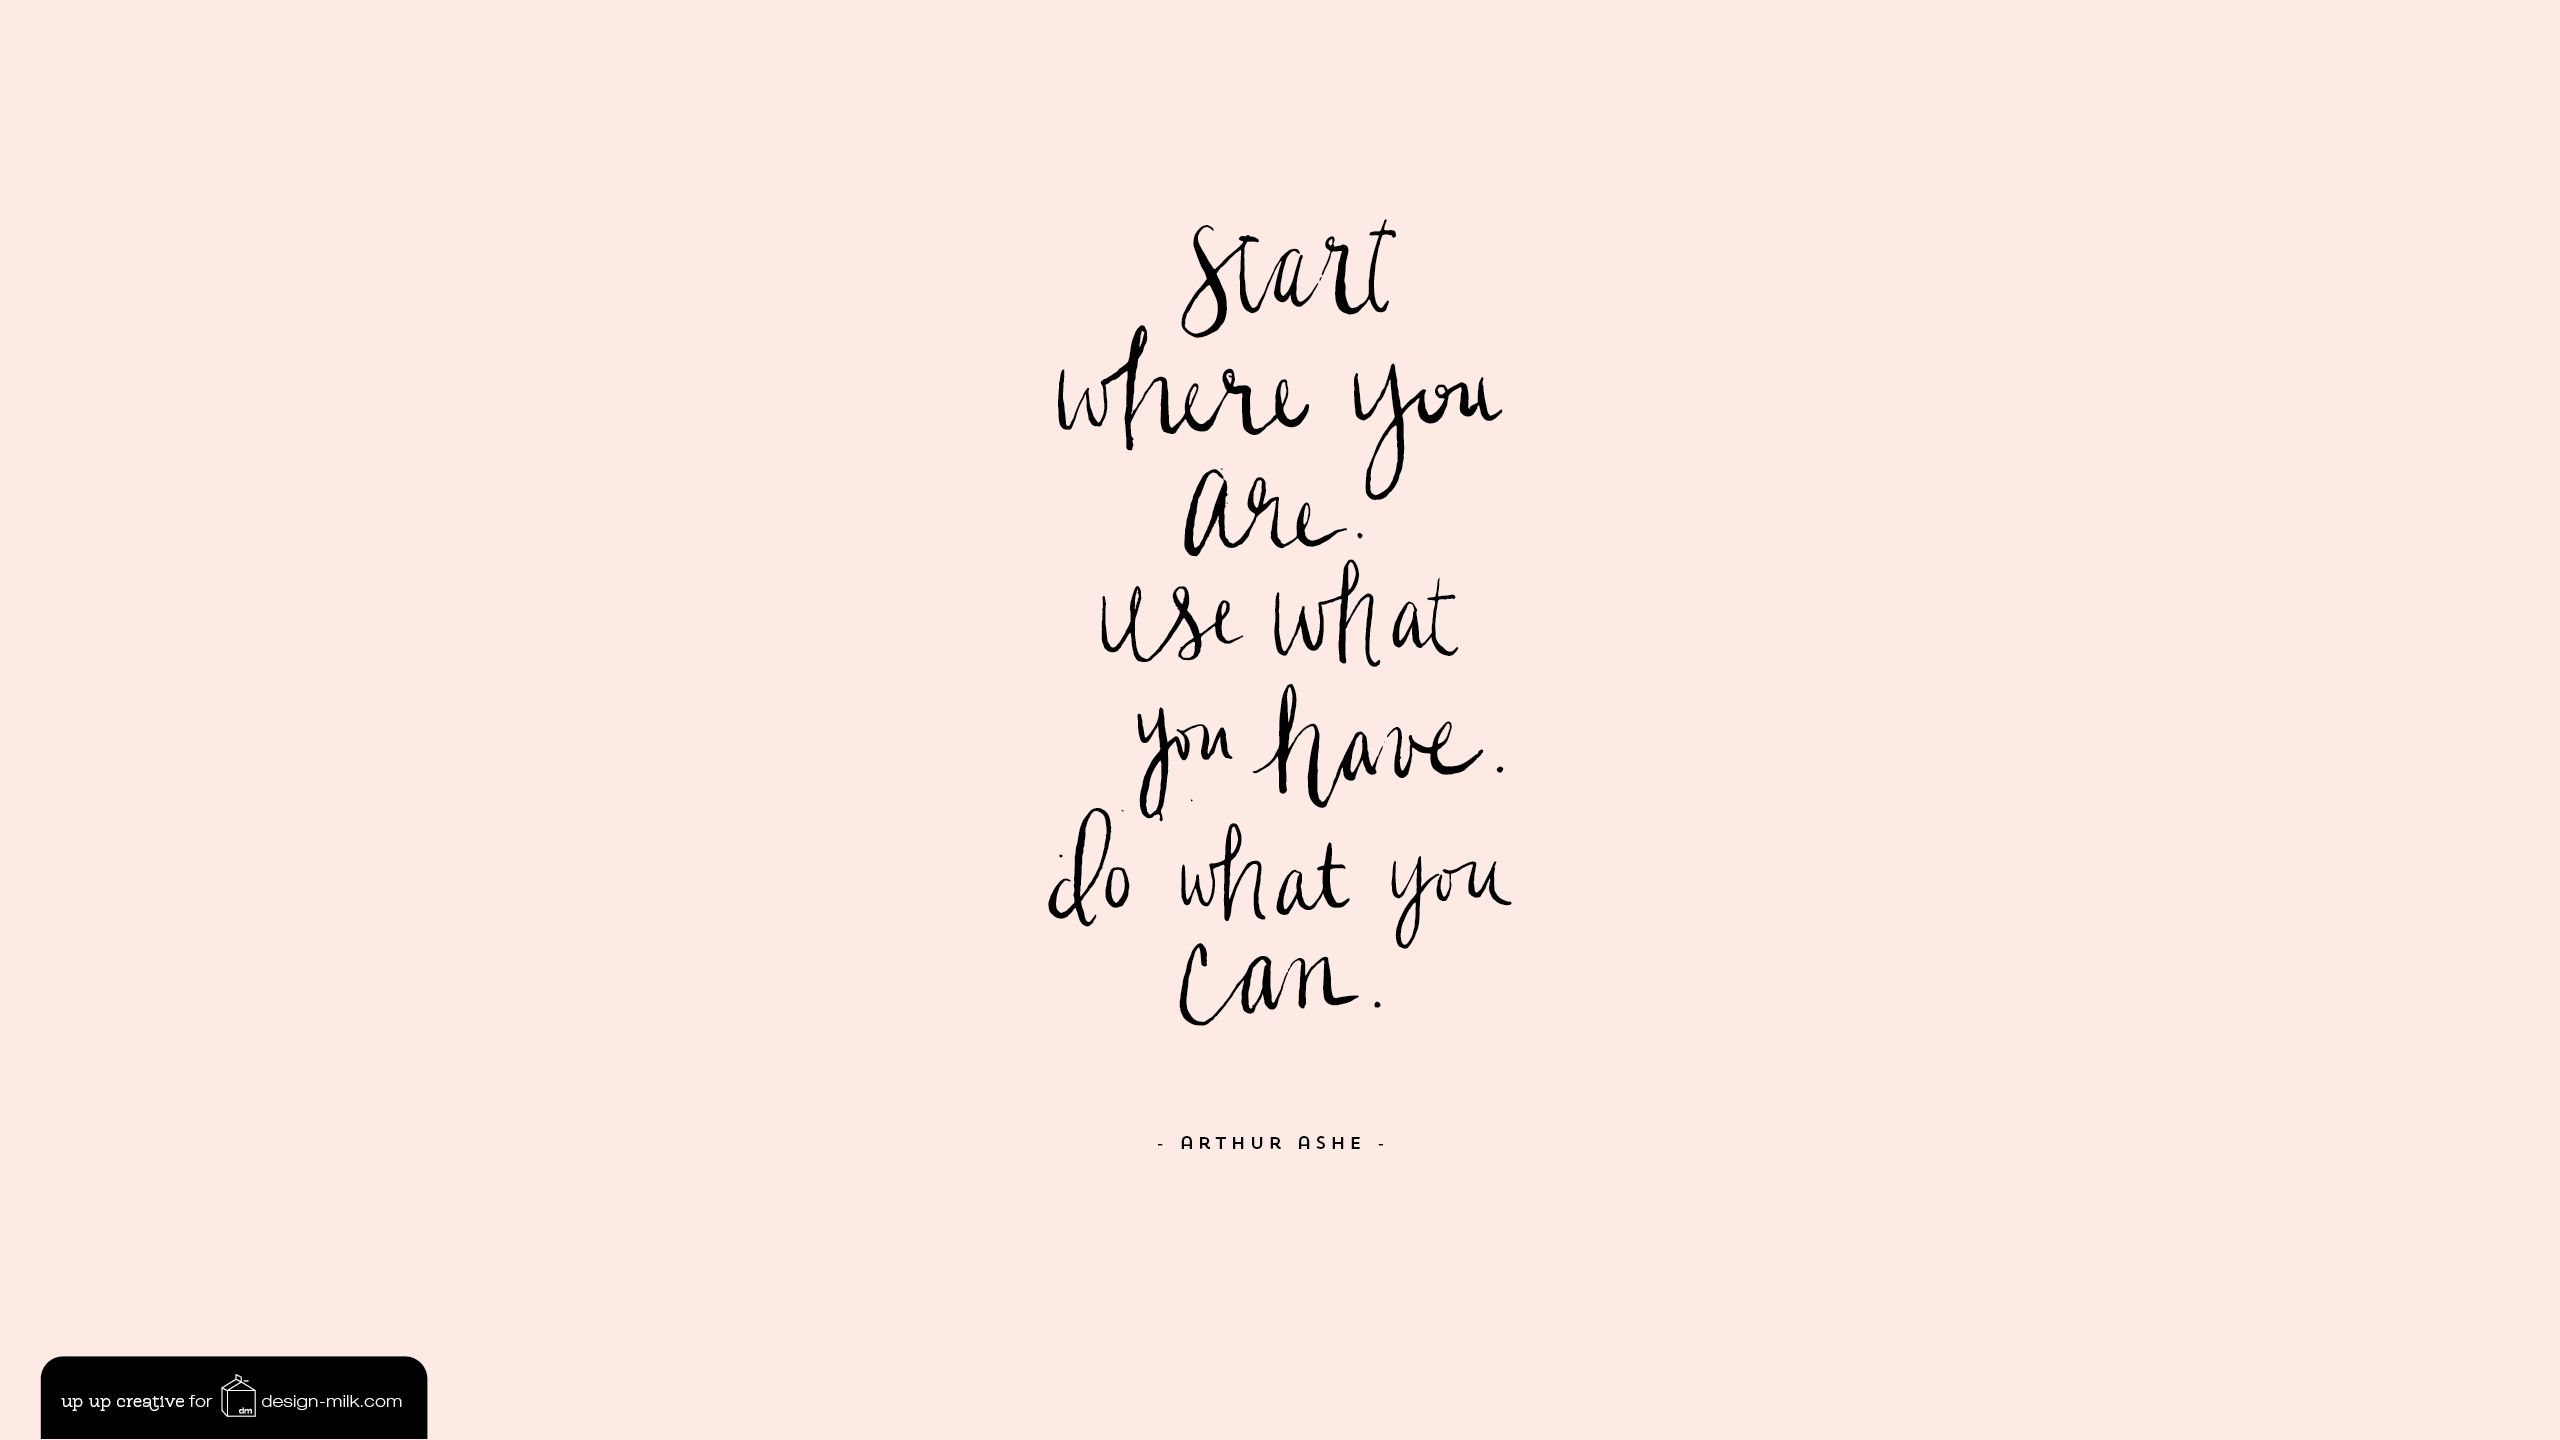 Start Where You Are Use What You Have Do What You Can Desktop Wallpaper Laptop Wallpaper Quotes Macbook Air Wallpaper Imac Wallpaper